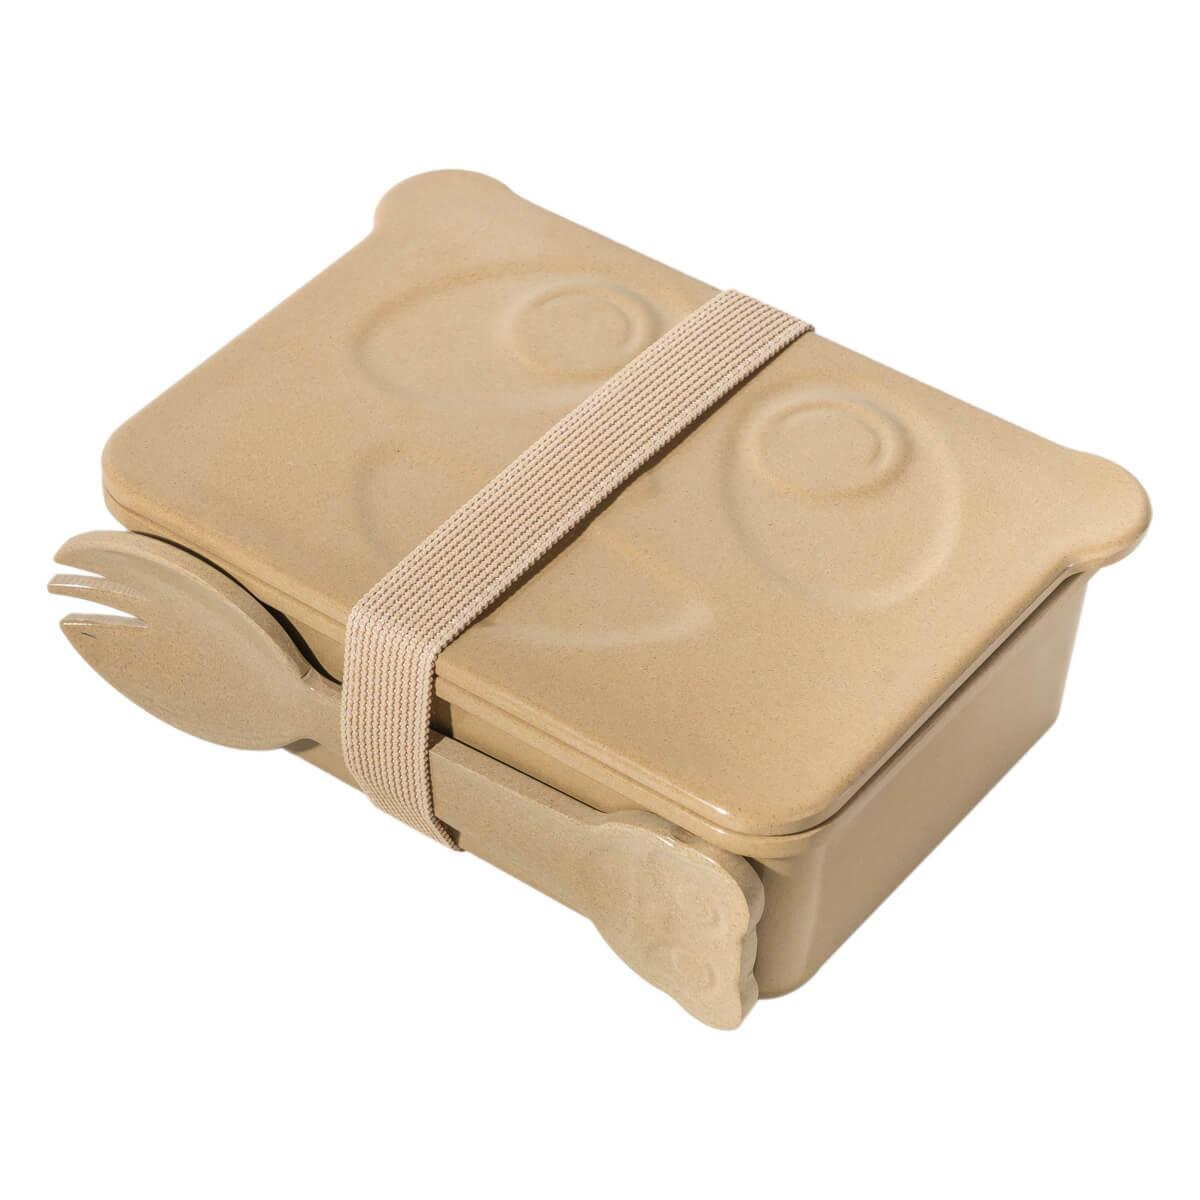 Kids Biodegradable Lunch Box Plastic Free Food Container